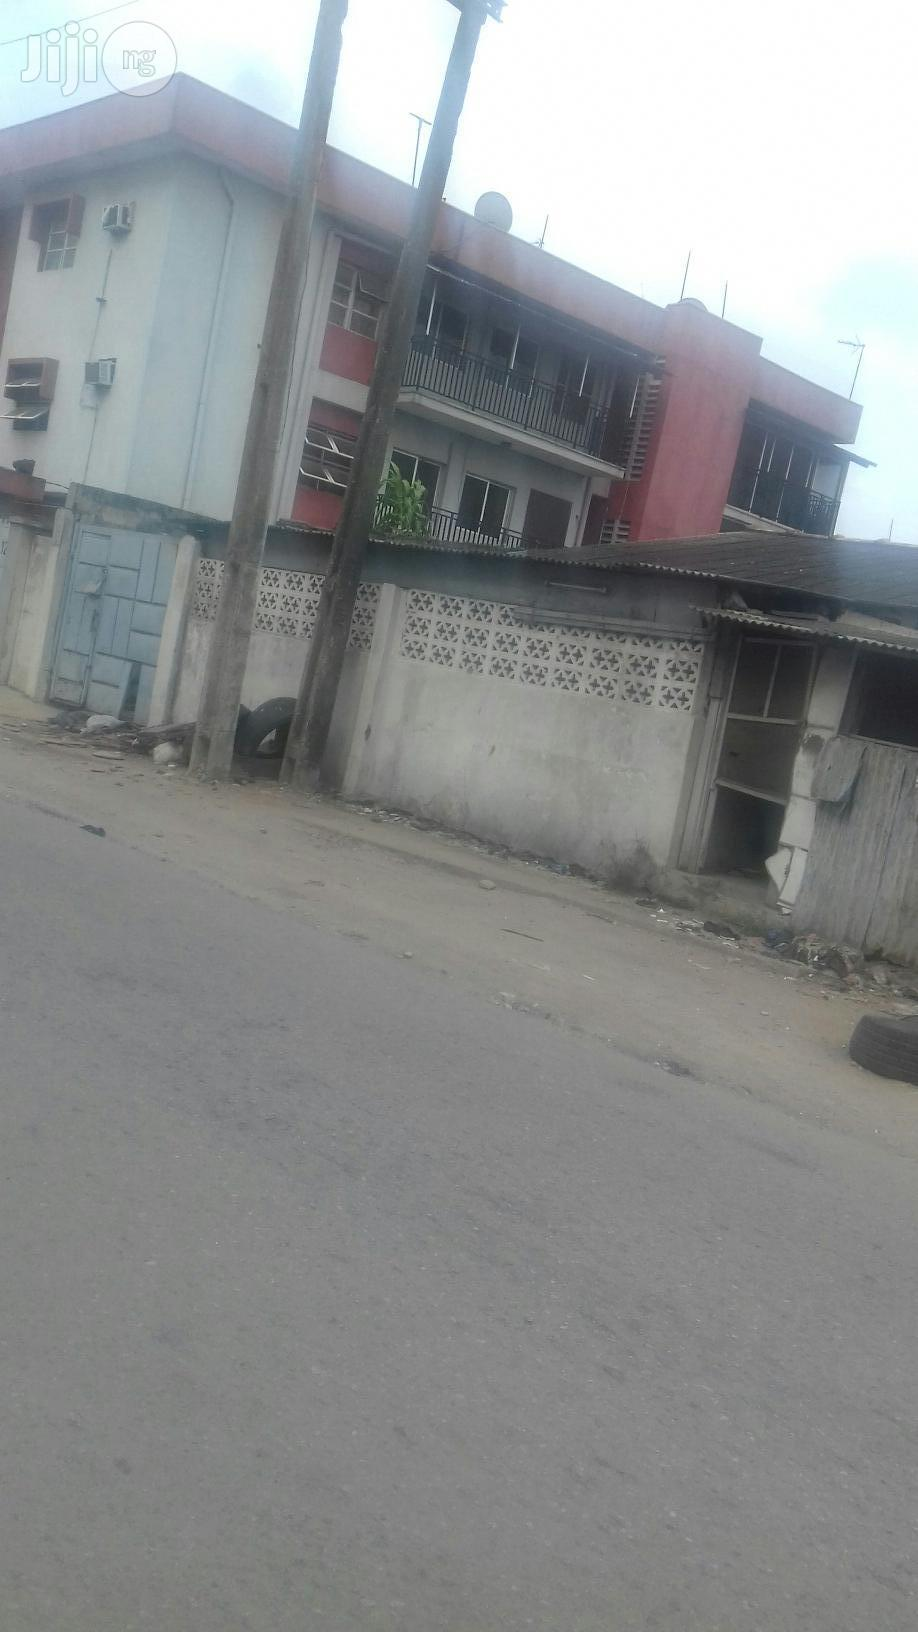 3 Bedrooms Bungalow Off Akerele Surulere Lagos For Sale | Houses & Apartments For Sale for sale in Surulere, Lagos State, Nigeria